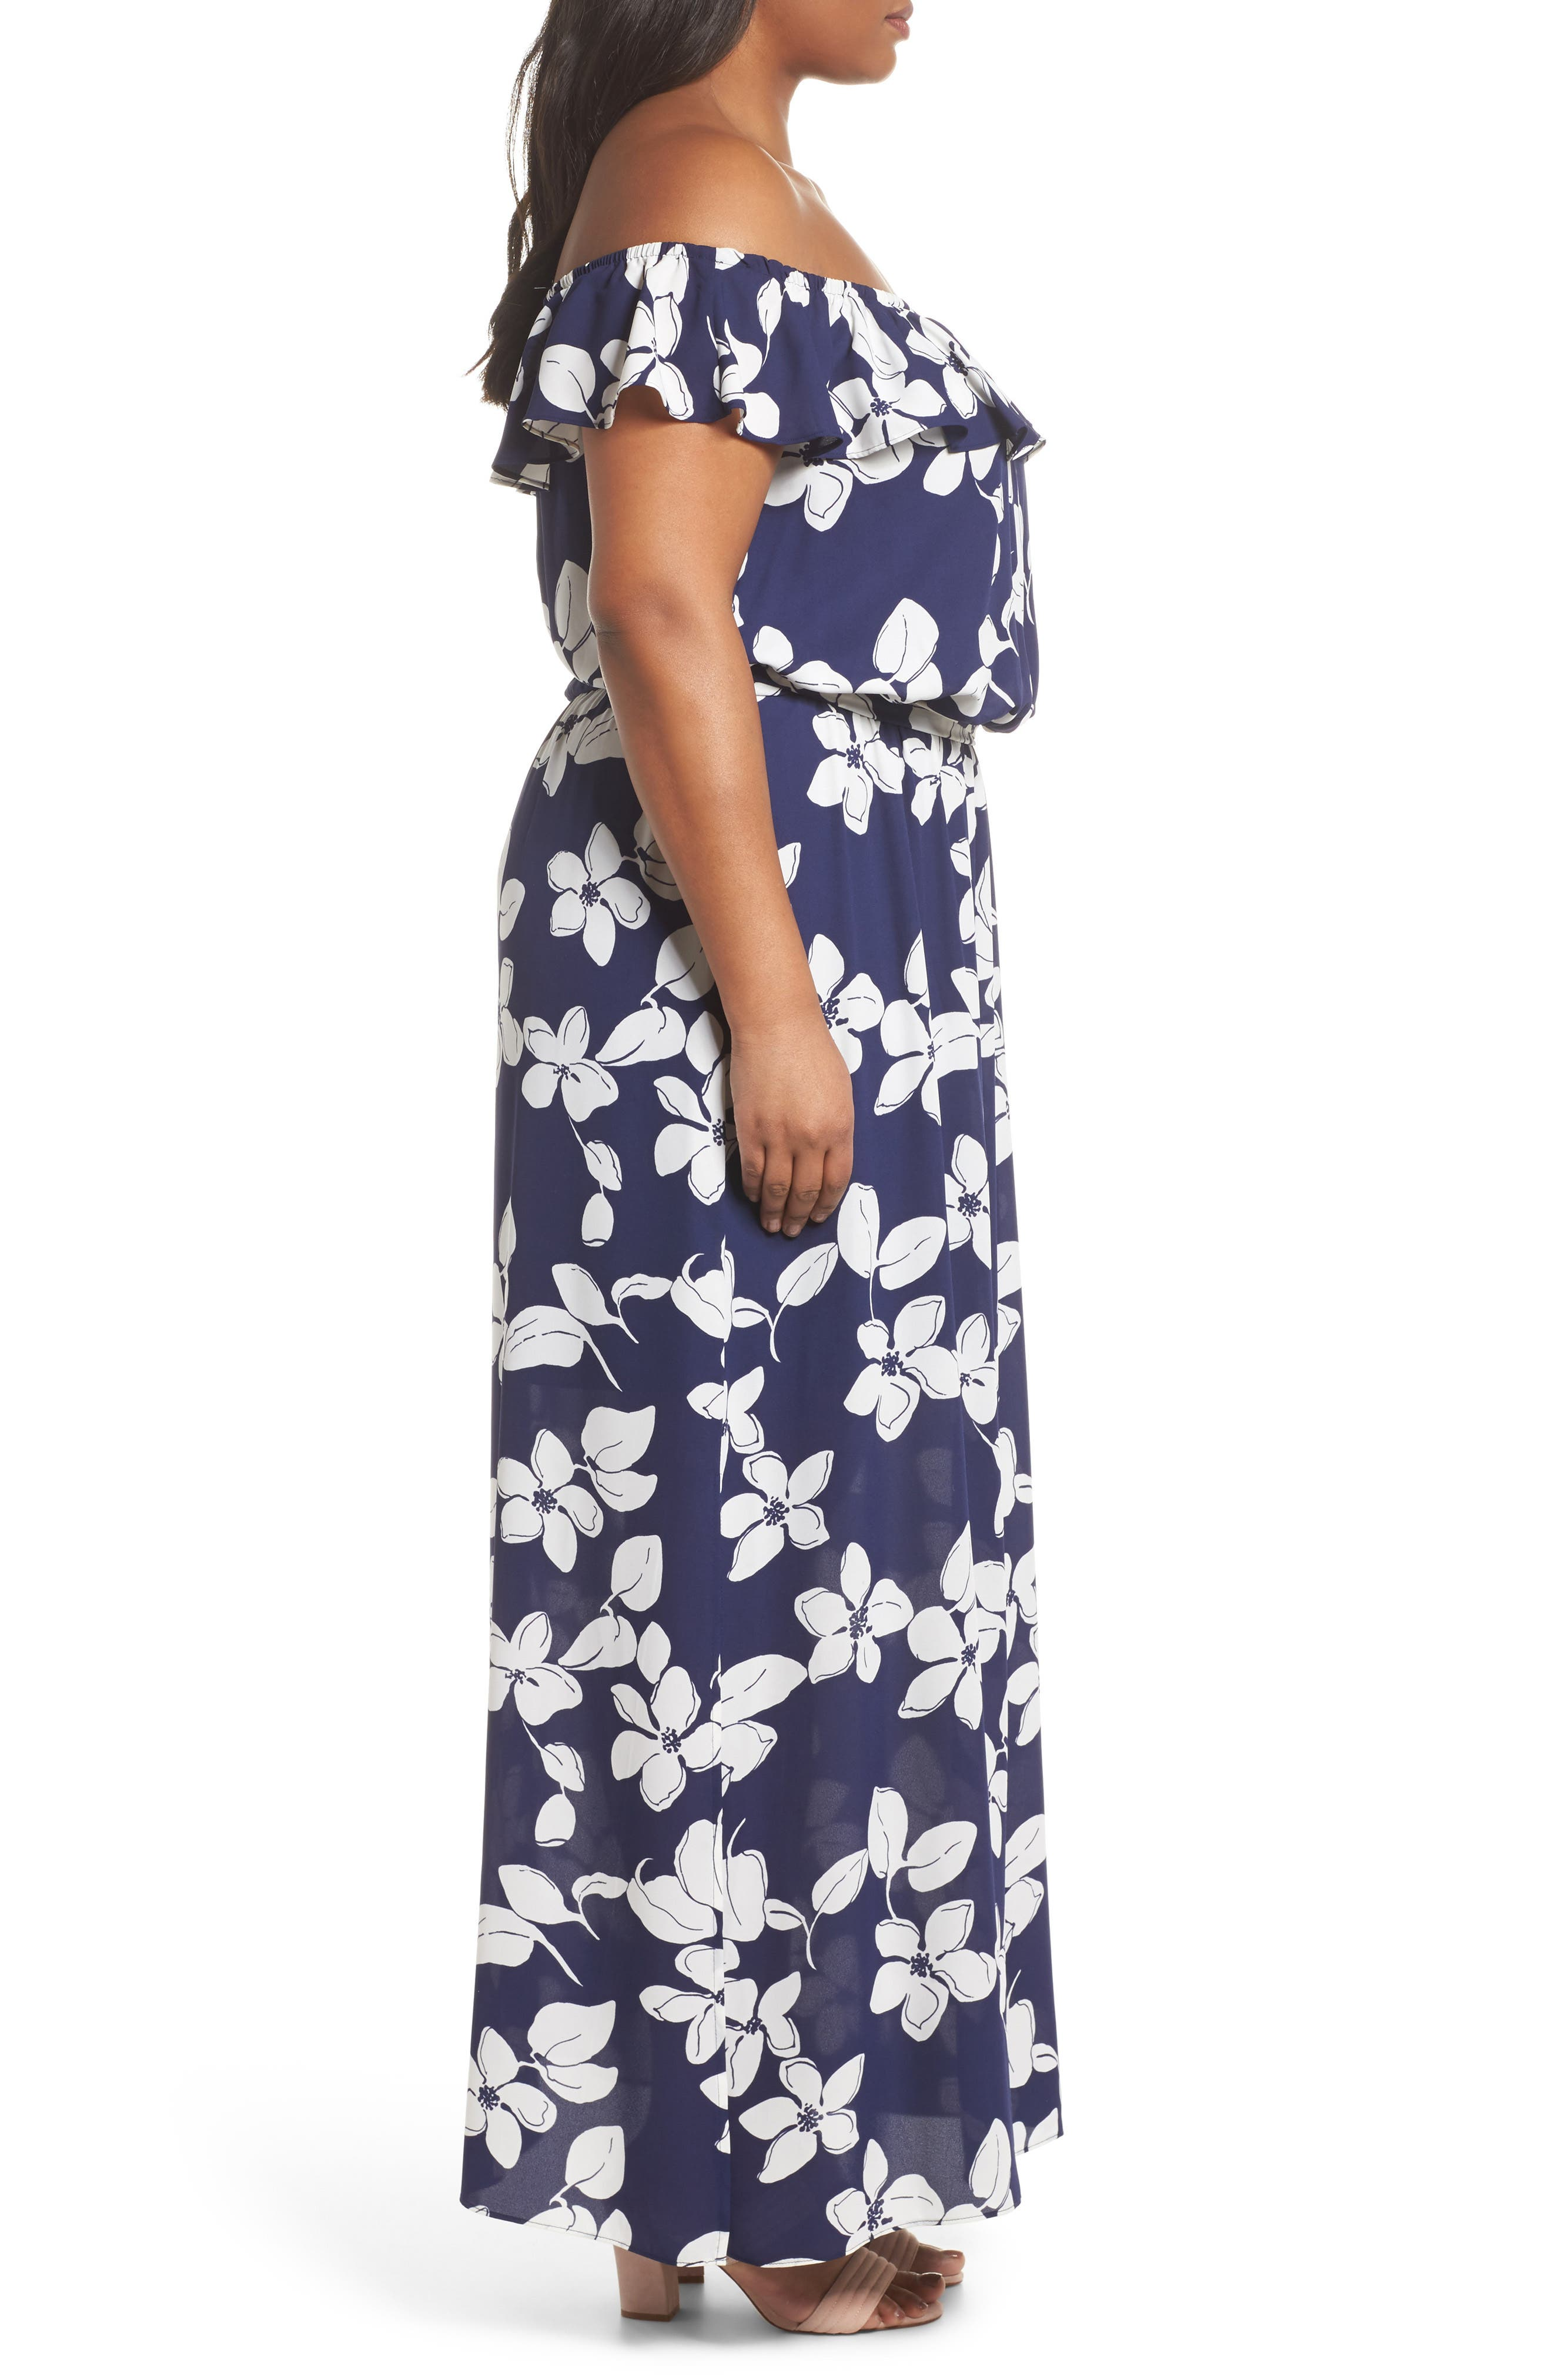 ADRIANNA PAPELL,                             Simple Delight Ruffle Maxi Dress,                             Alternate thumbnail 3, color,                             480